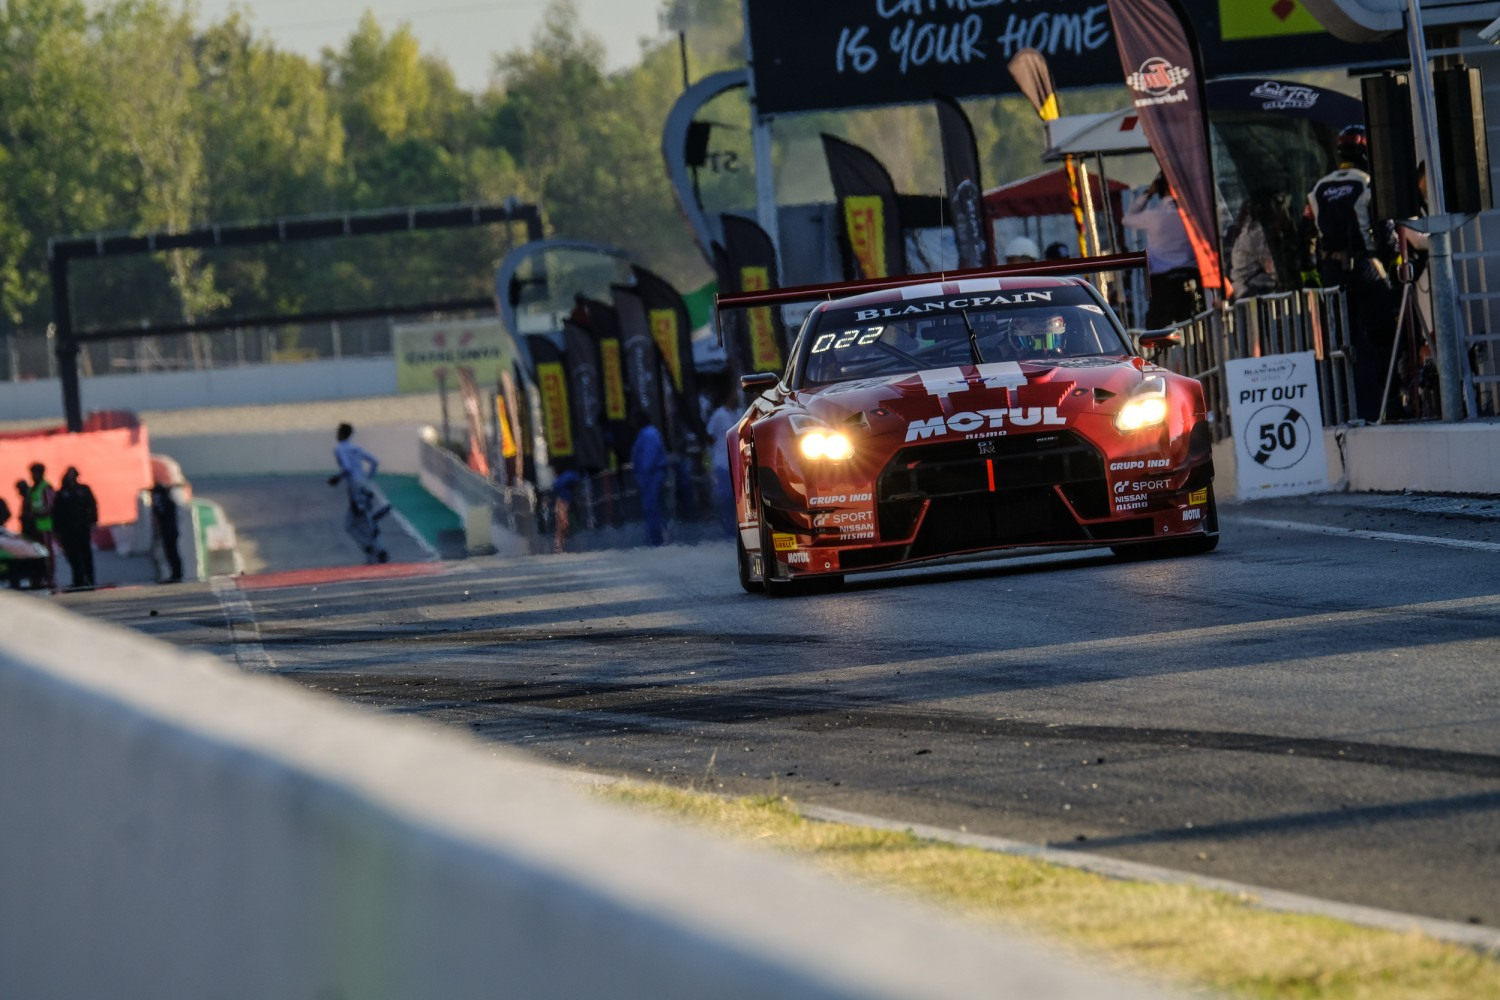 #22 GT SPORT MOTUL Team RJN GBR Nissan GT-R Nismo GT3 Silver Cup Colin Noble GBR Ricardo Sanchez MEX Struan Moore GBR, Free Practice  | SRO / Dirk Bogaerts Photography